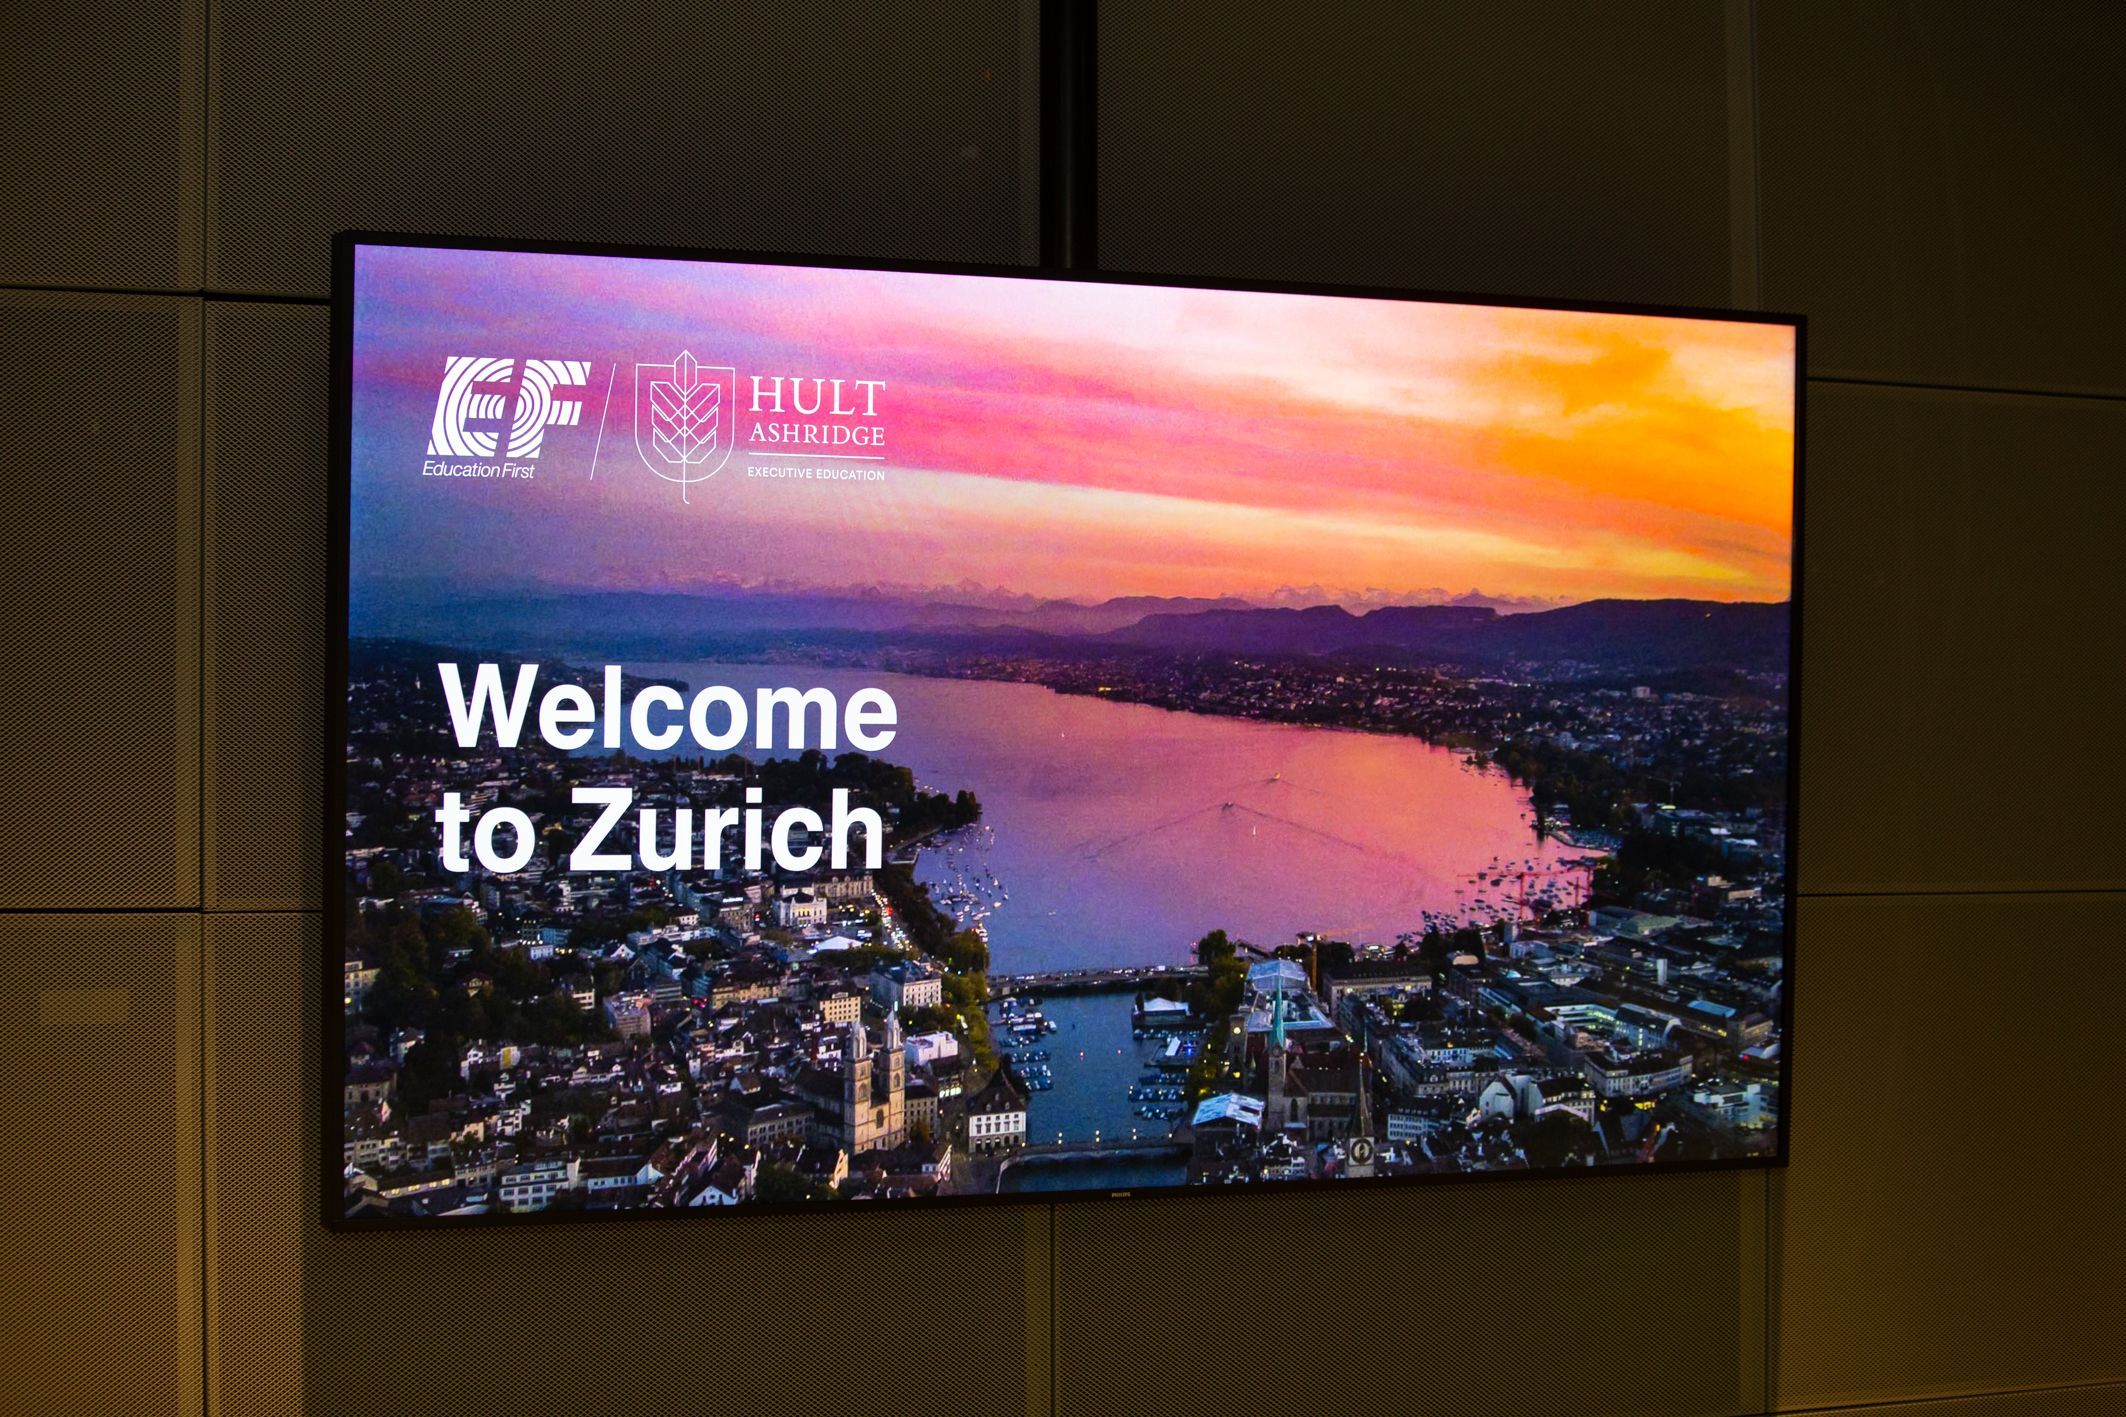 Welcome to Zurich presentation screen